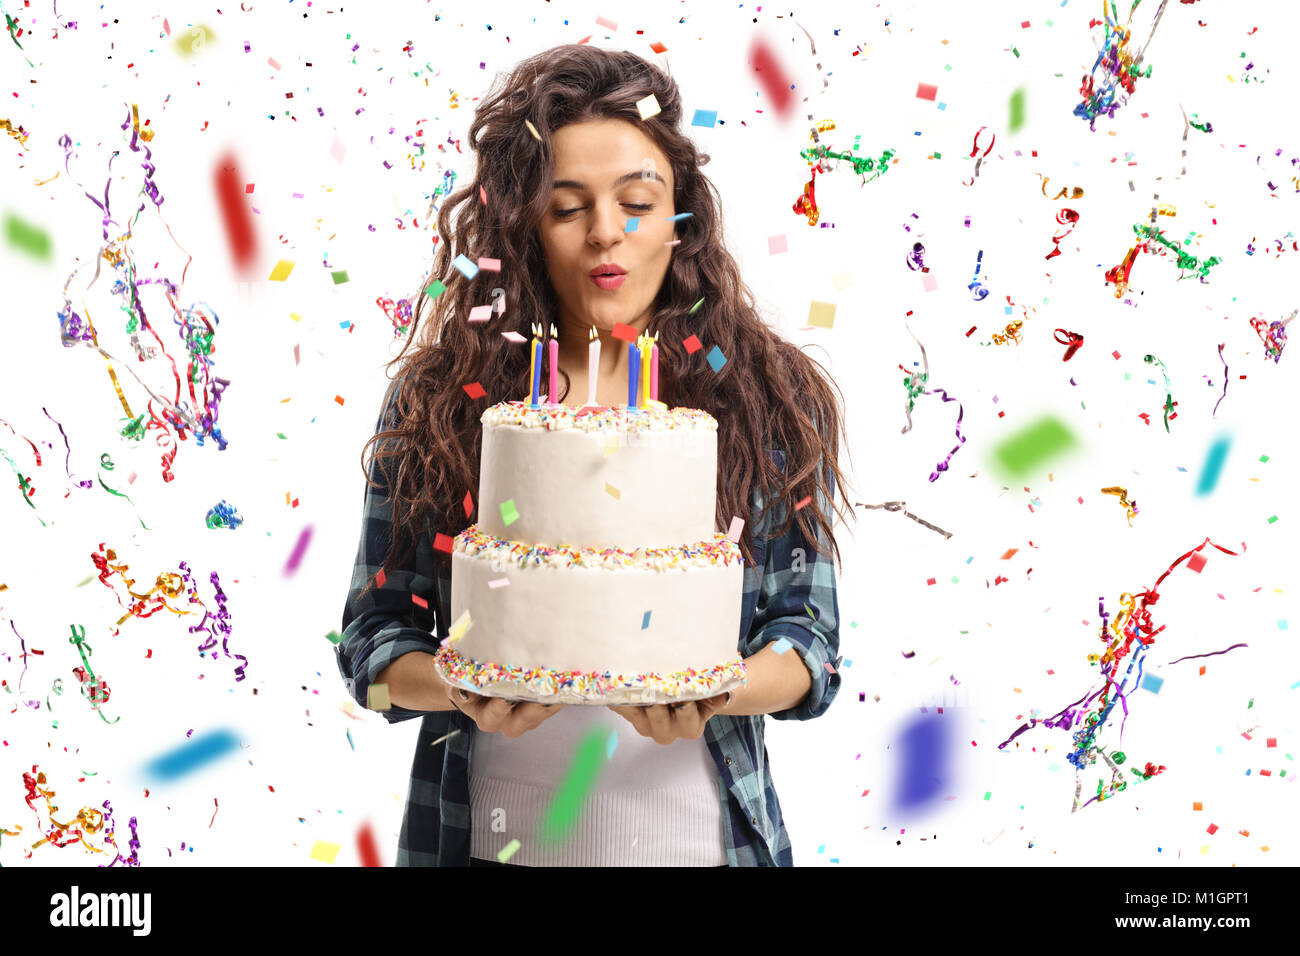 Teenage Girl Blowing Candles On A Birthday Cake With Confetti Stock Photo Alamy